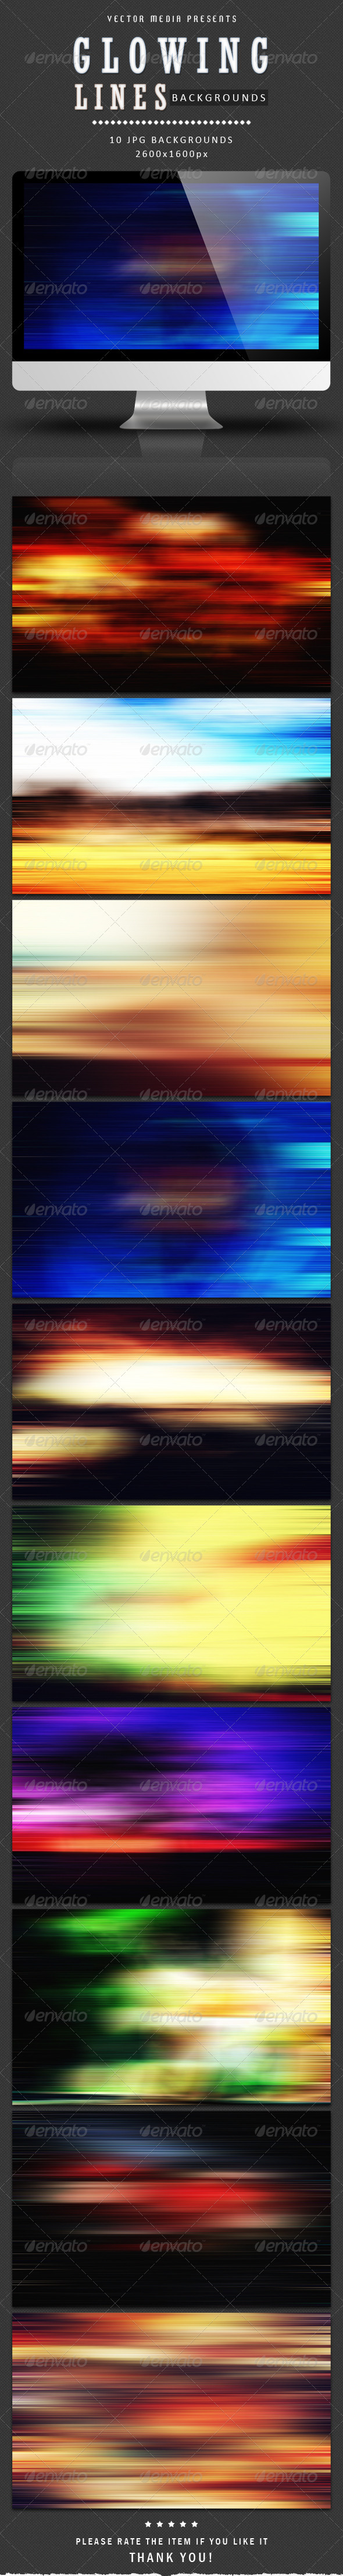 Glowing Lines - Backgrounds - Abstract Backgrounds